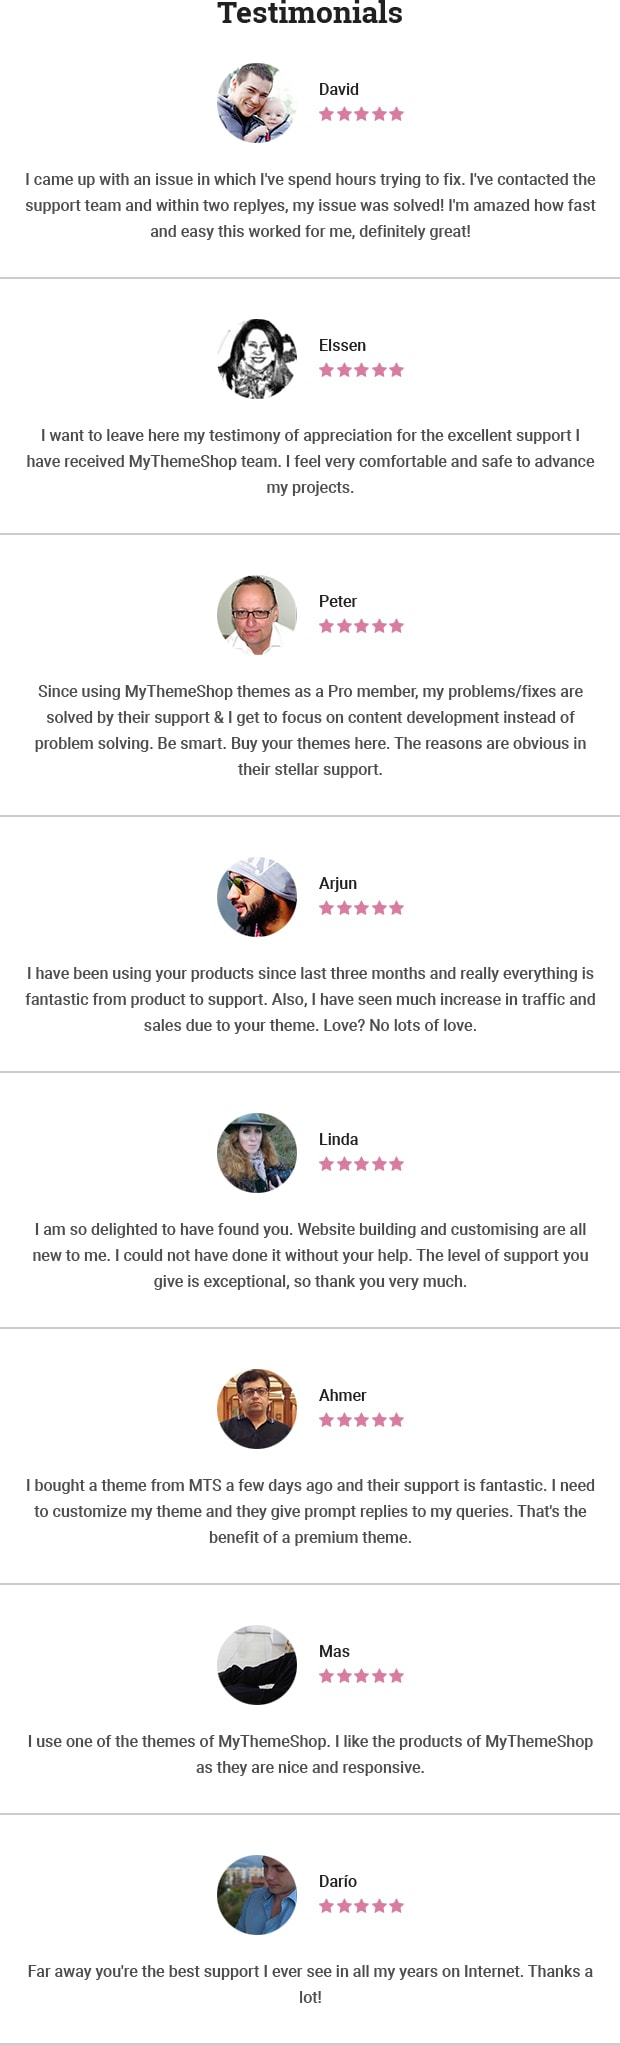 WP-Real-Estate-Pro-Testimonials